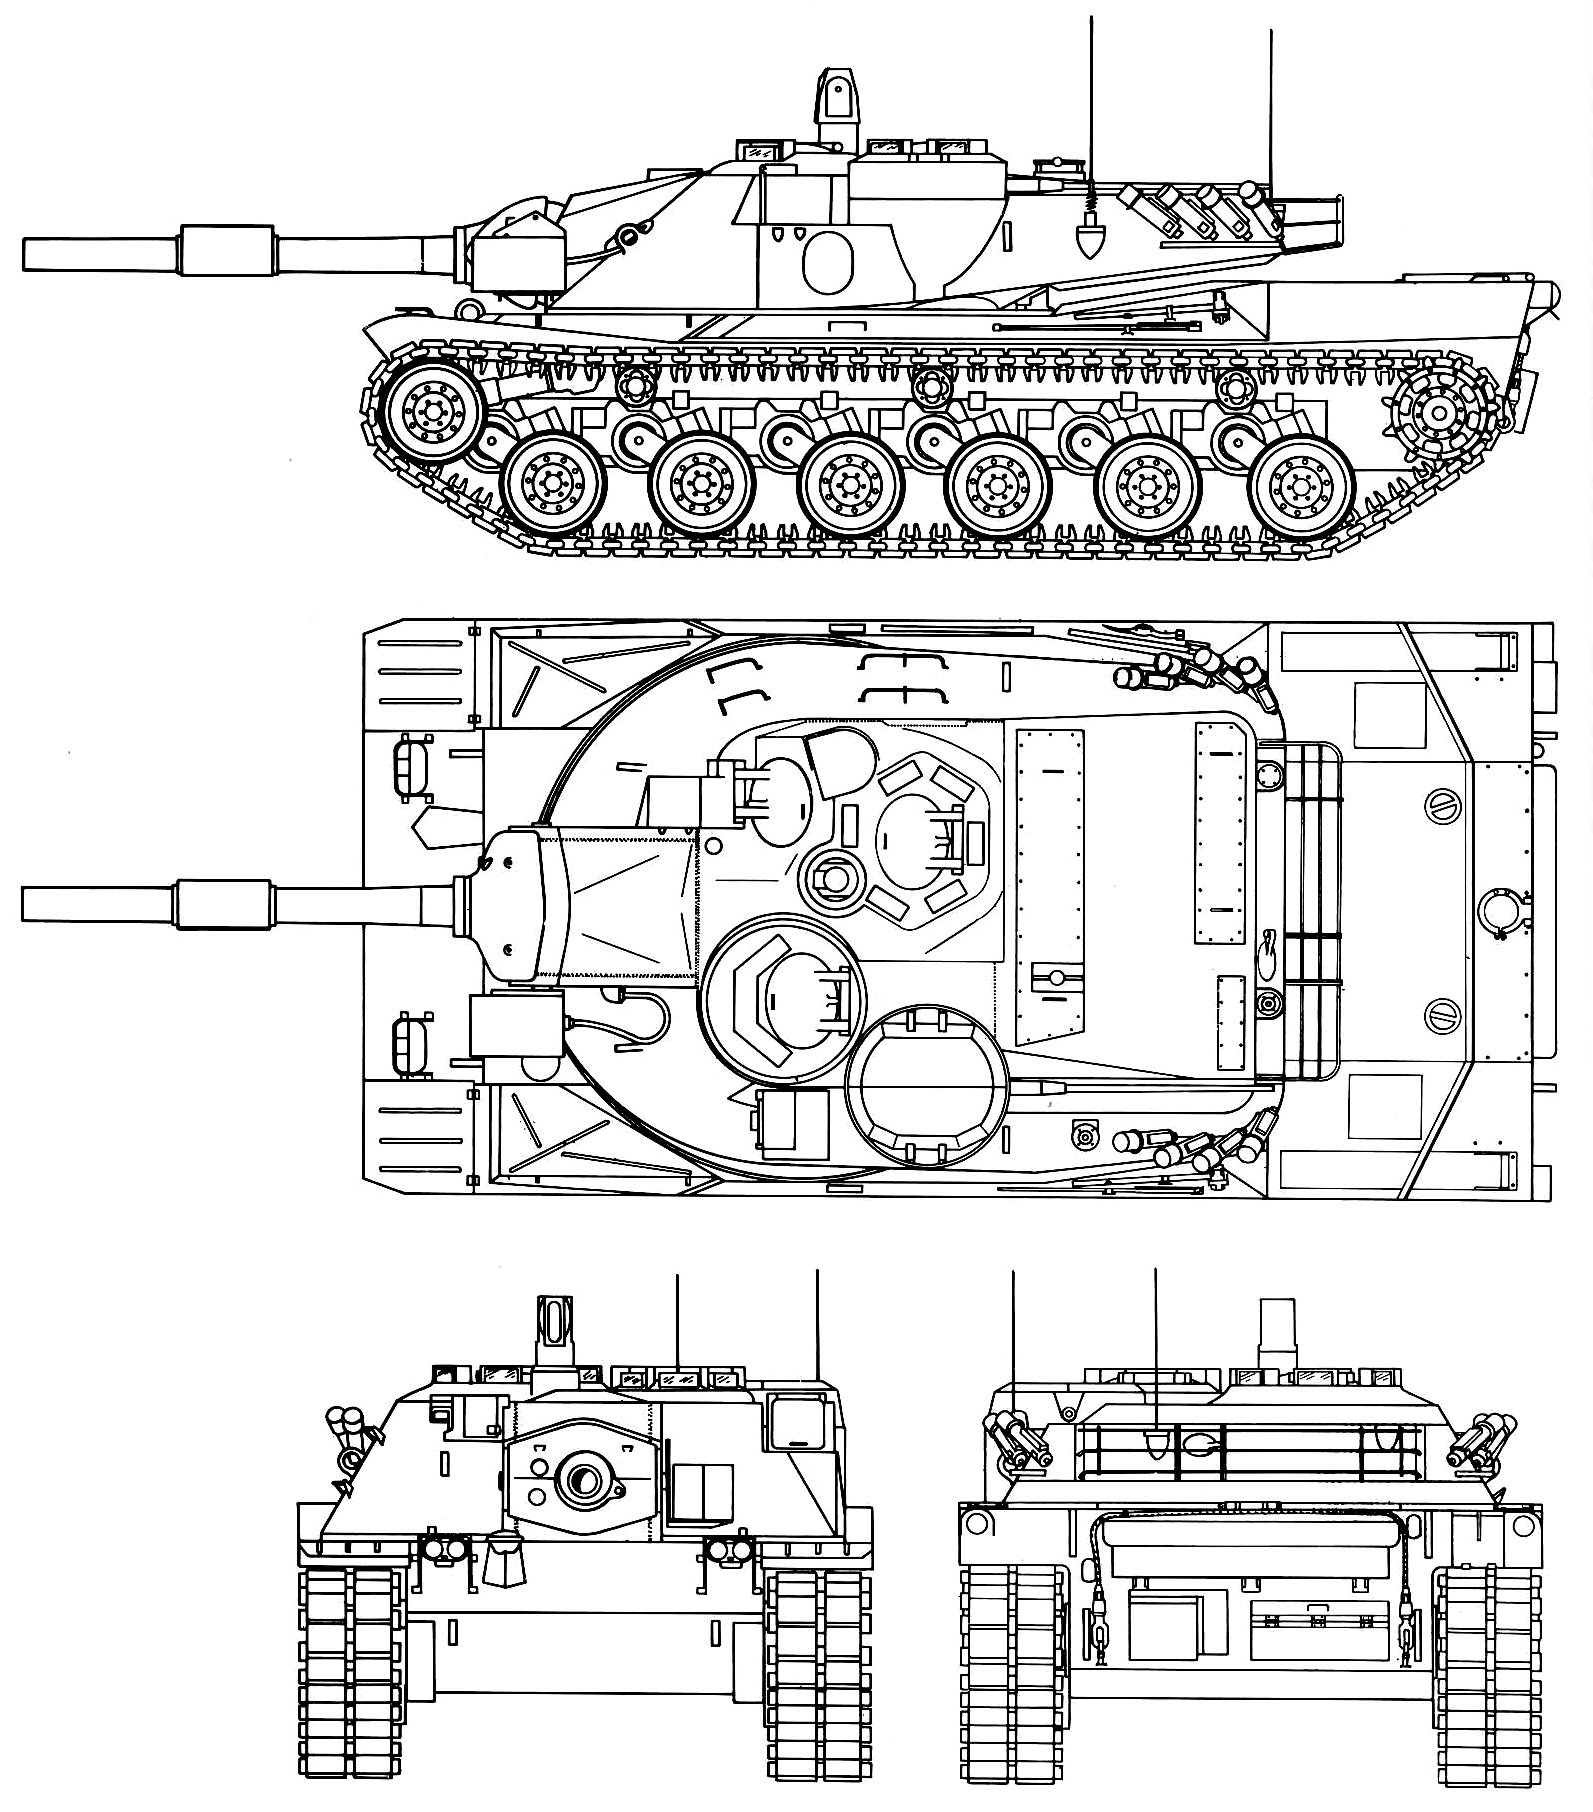 MBT-70 blueprint